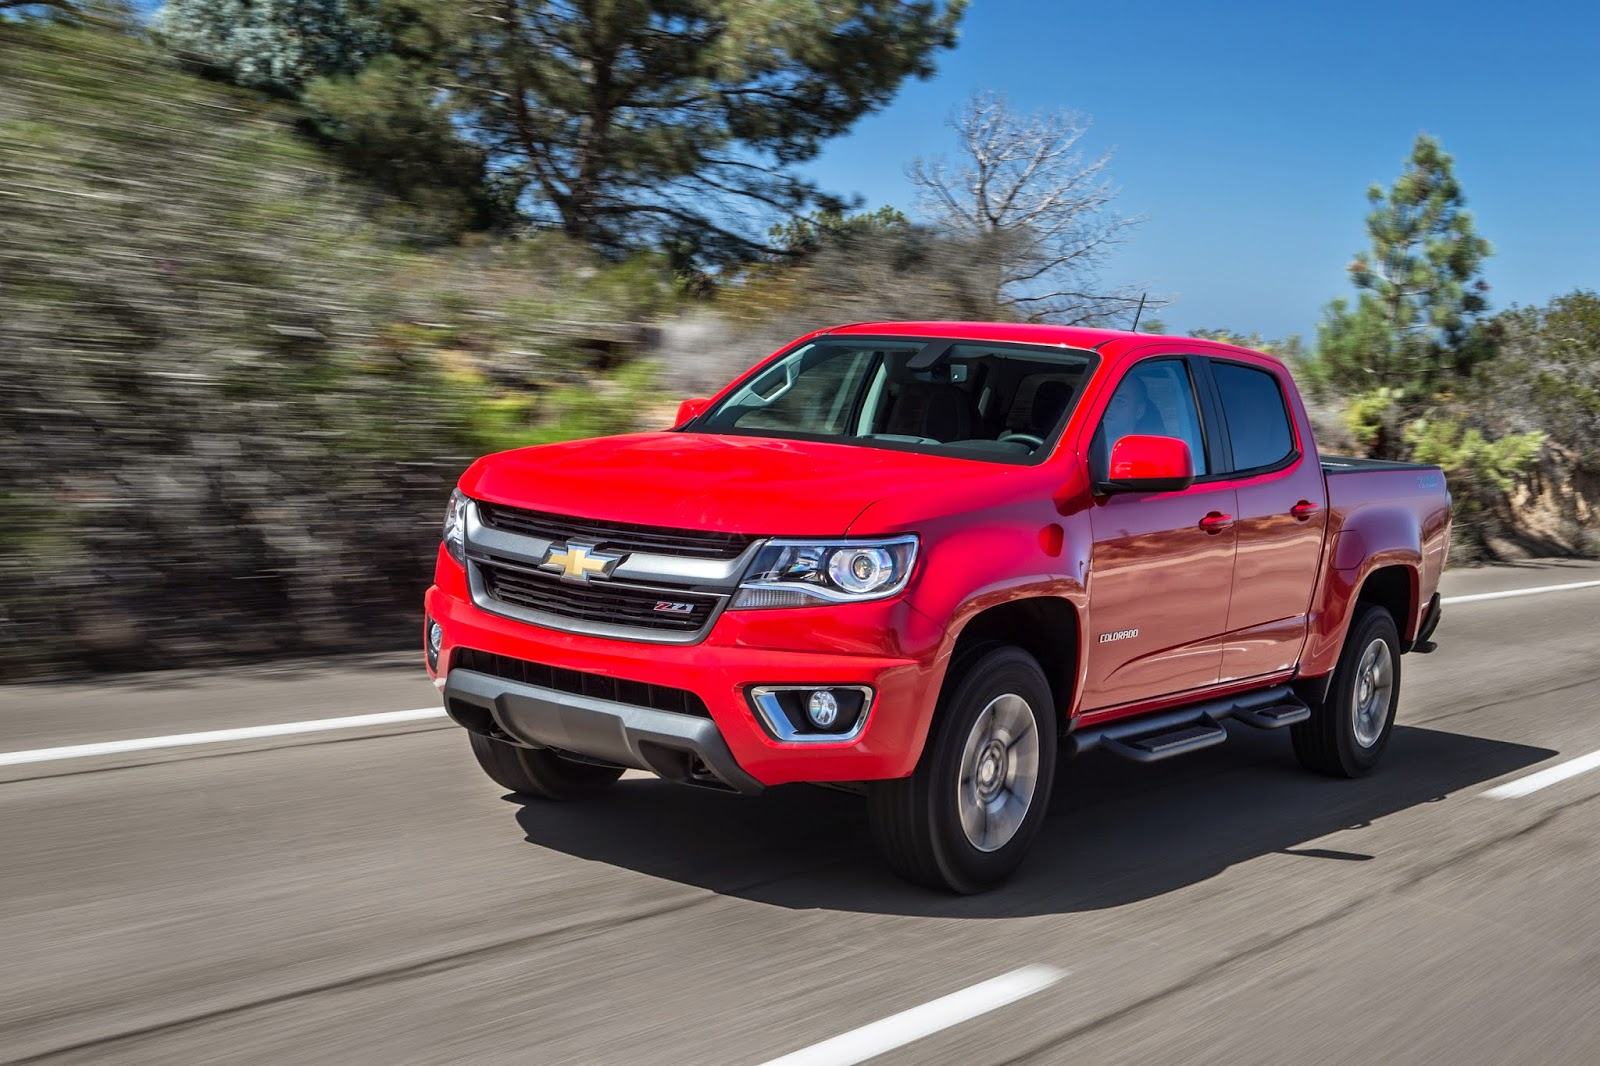 2015 Chevrolet Colorado Named Truck of the Year by MOTOR TREND